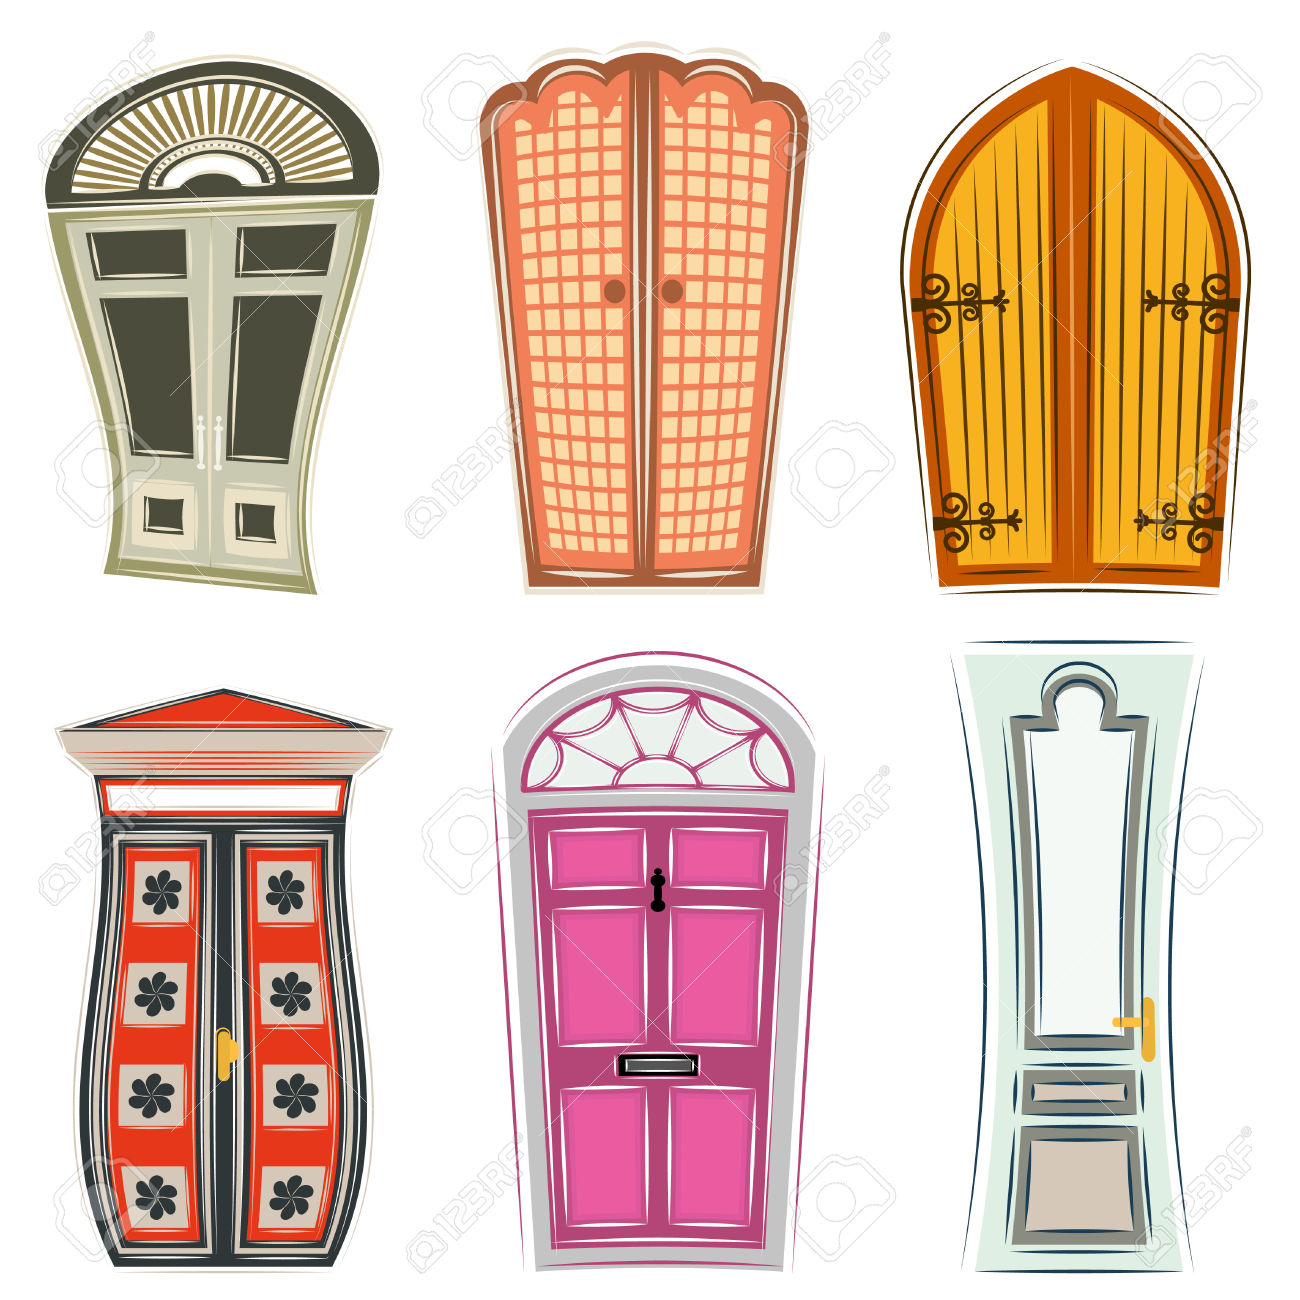 Door Royalty Free Cliparts, Vectors, And Stock Illustration. Image.